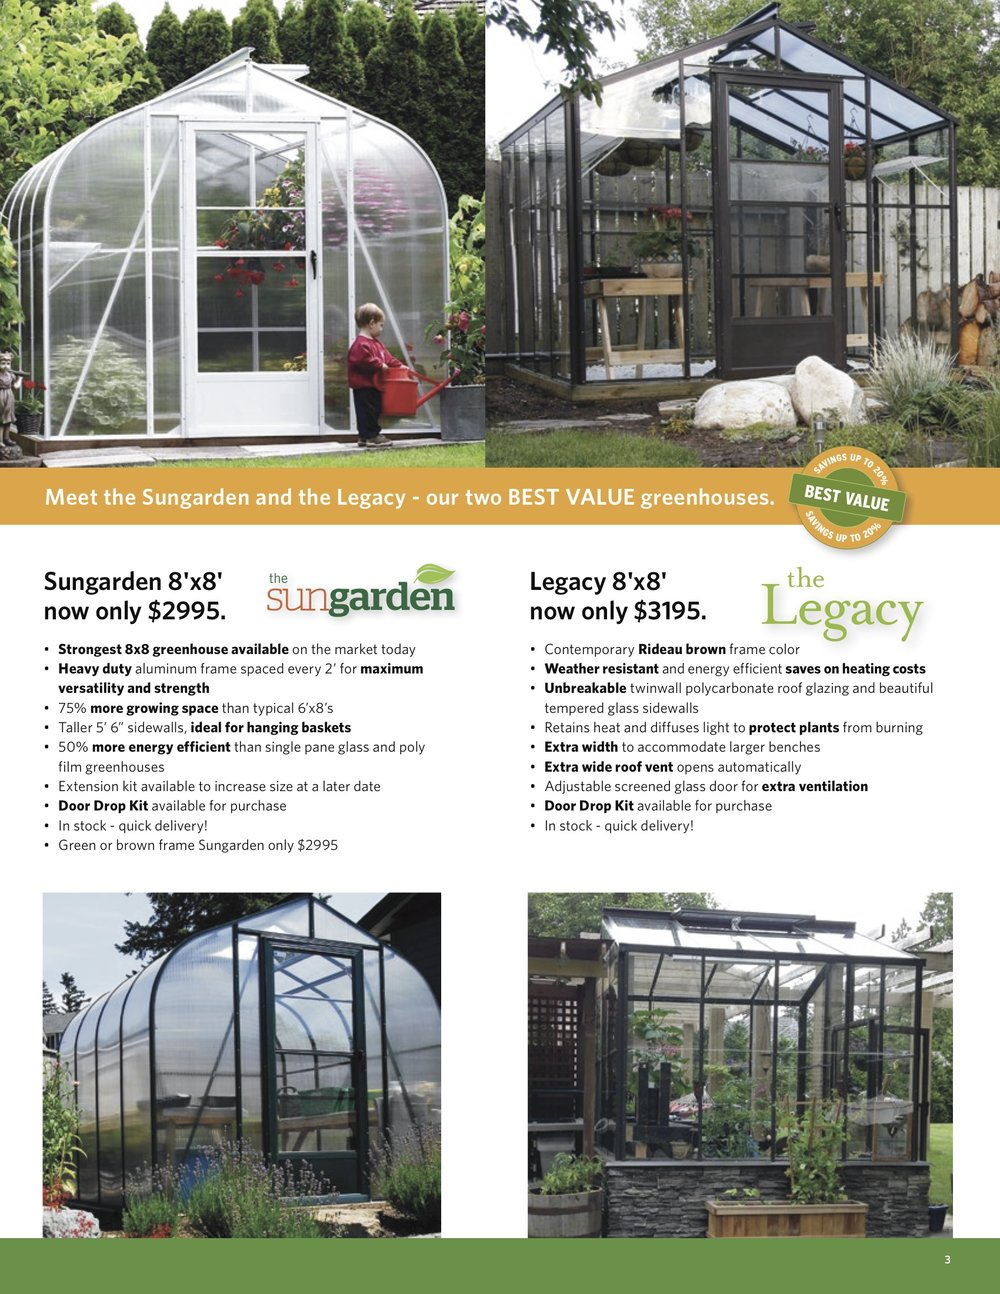 111552_Wisconsin Greenhouse Company_National Catalog (4) (dragged) 2.jpeg